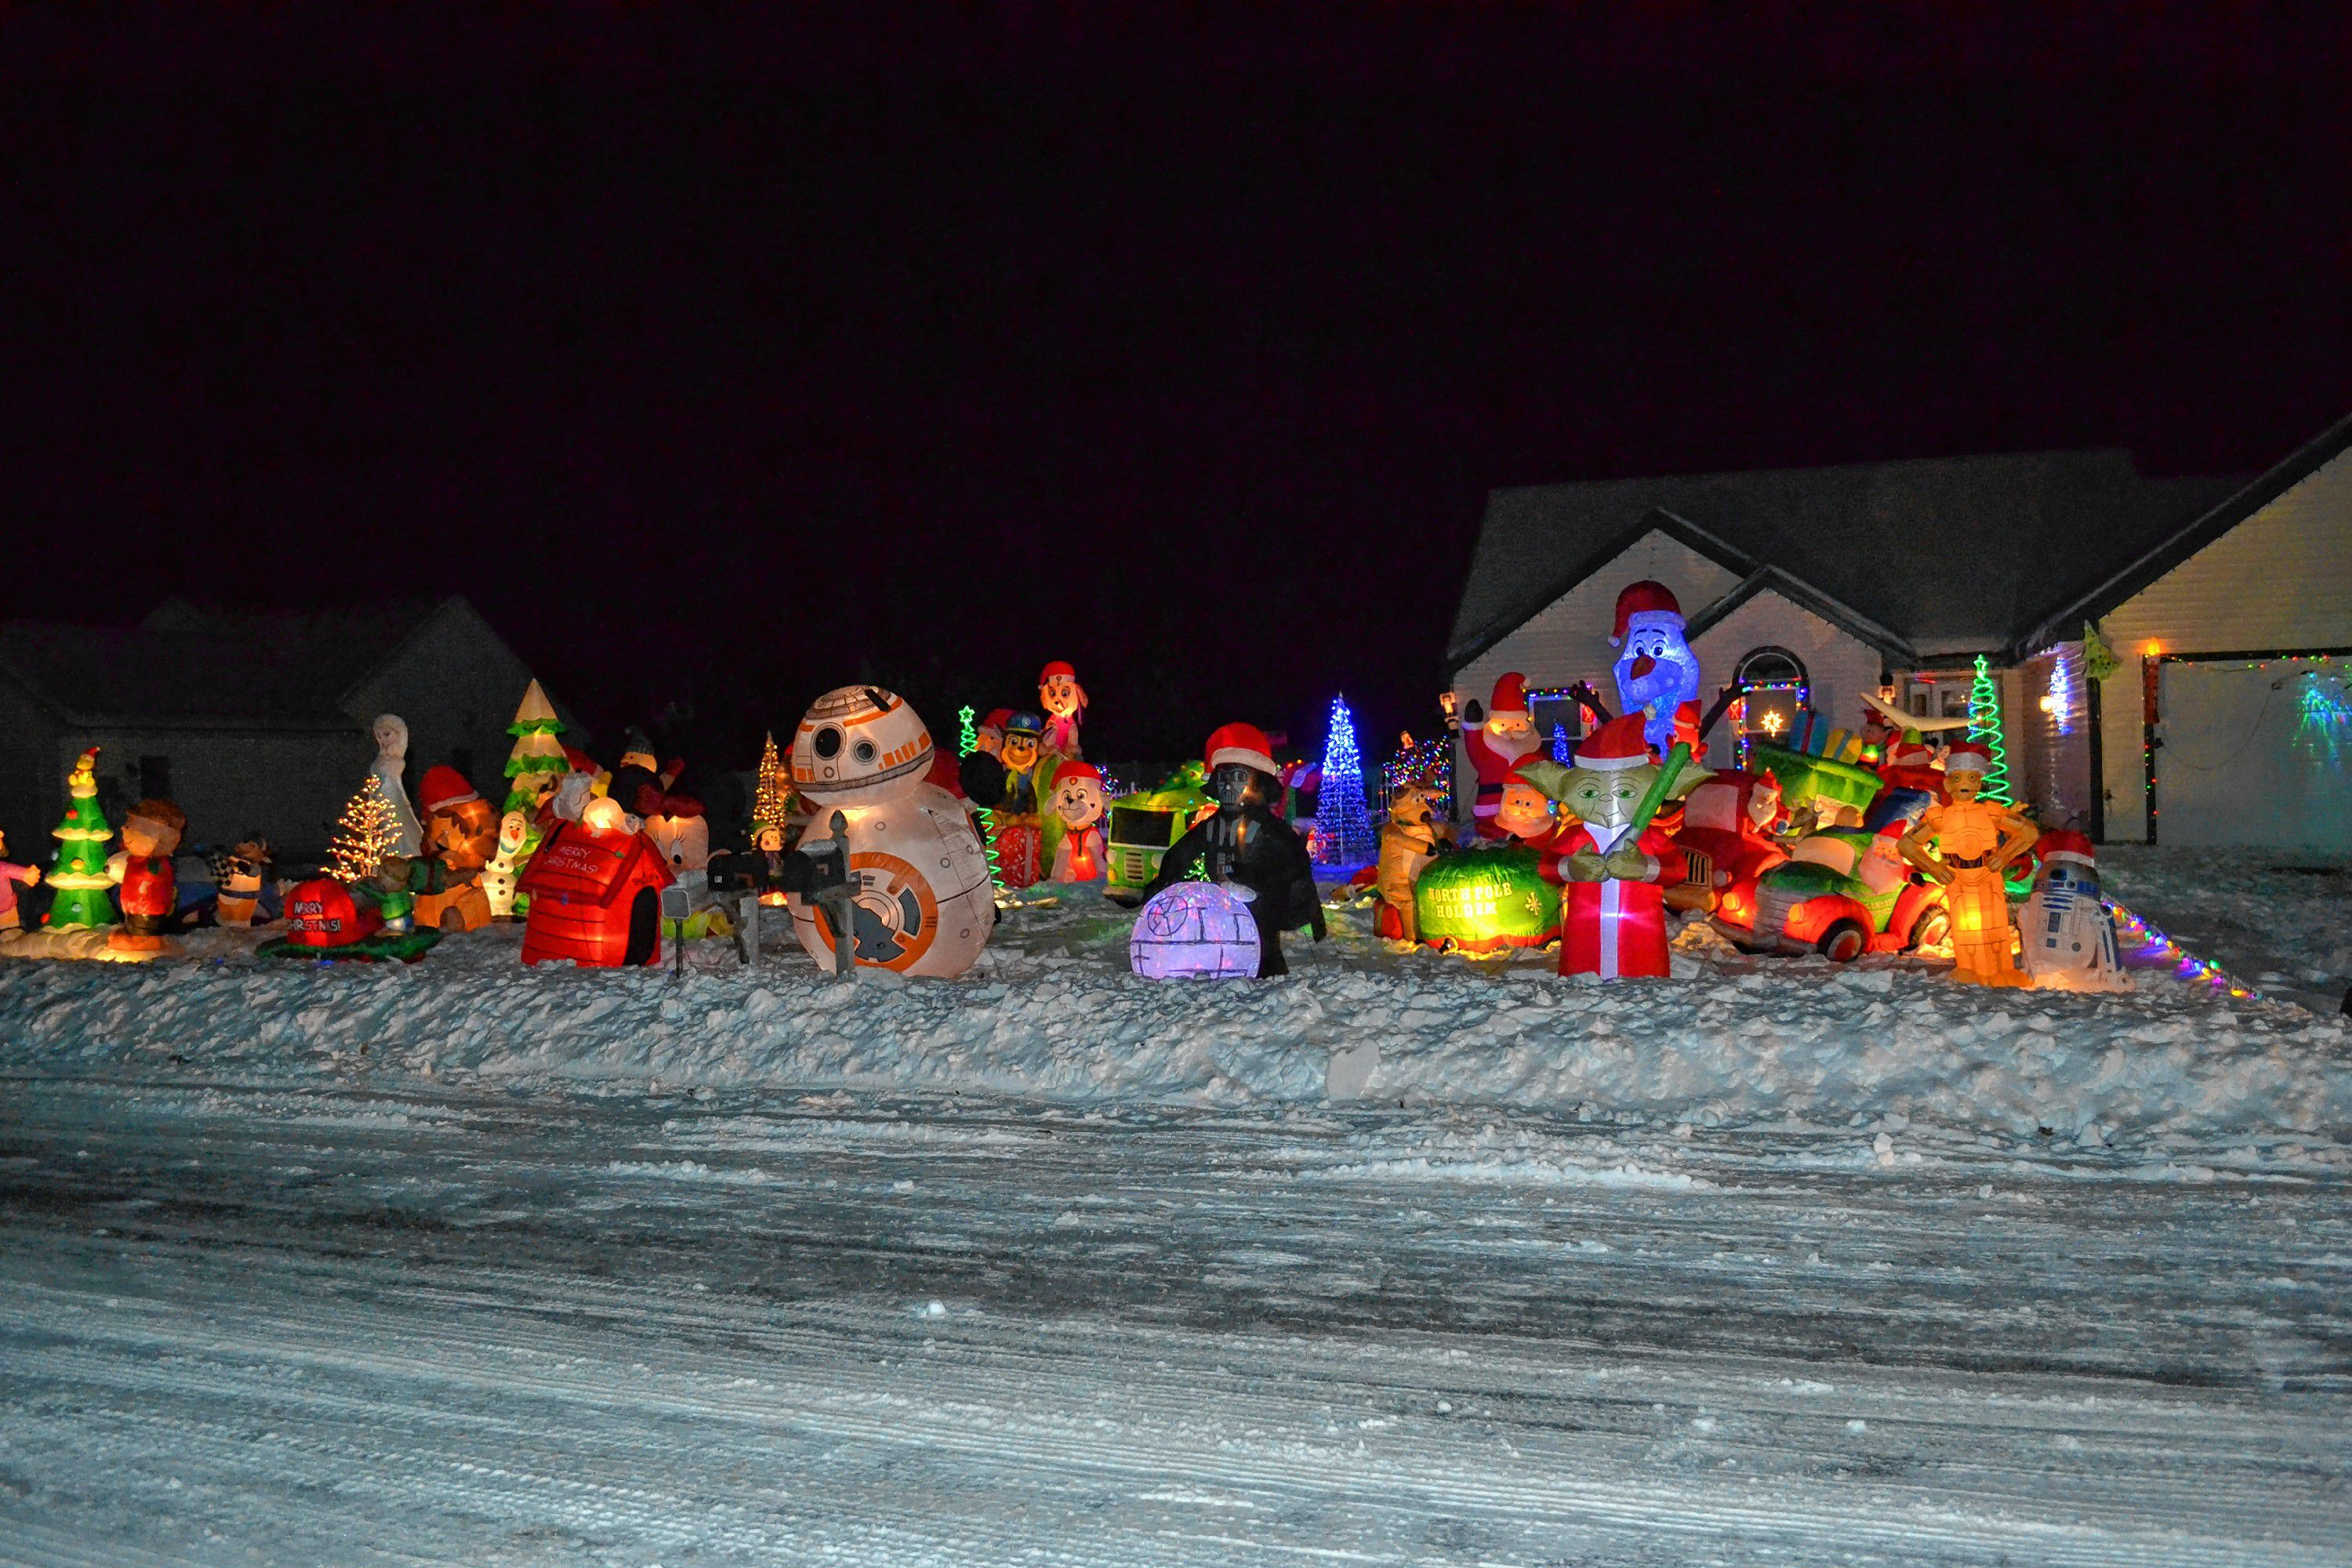 if inflatable holiday yard decorations are your thing you should take a drive down primrose